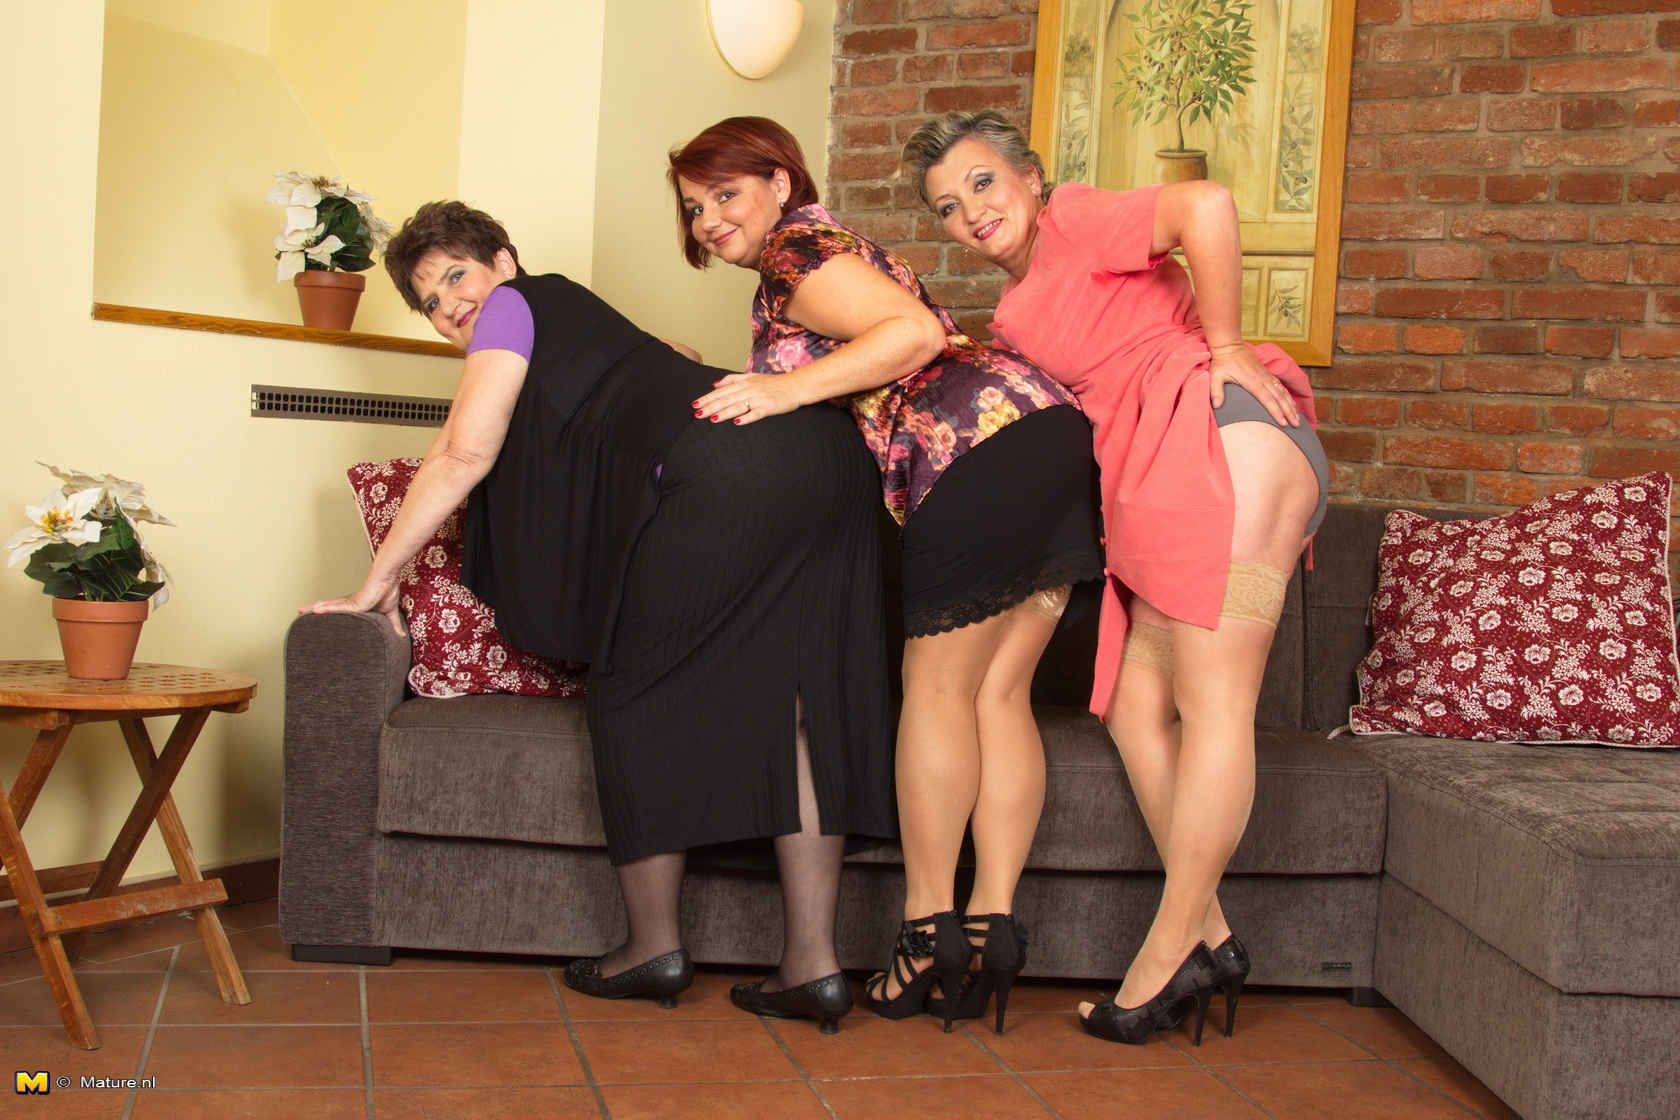 lucky young nerd is caught between 3 mature ladies and unloads on all of them